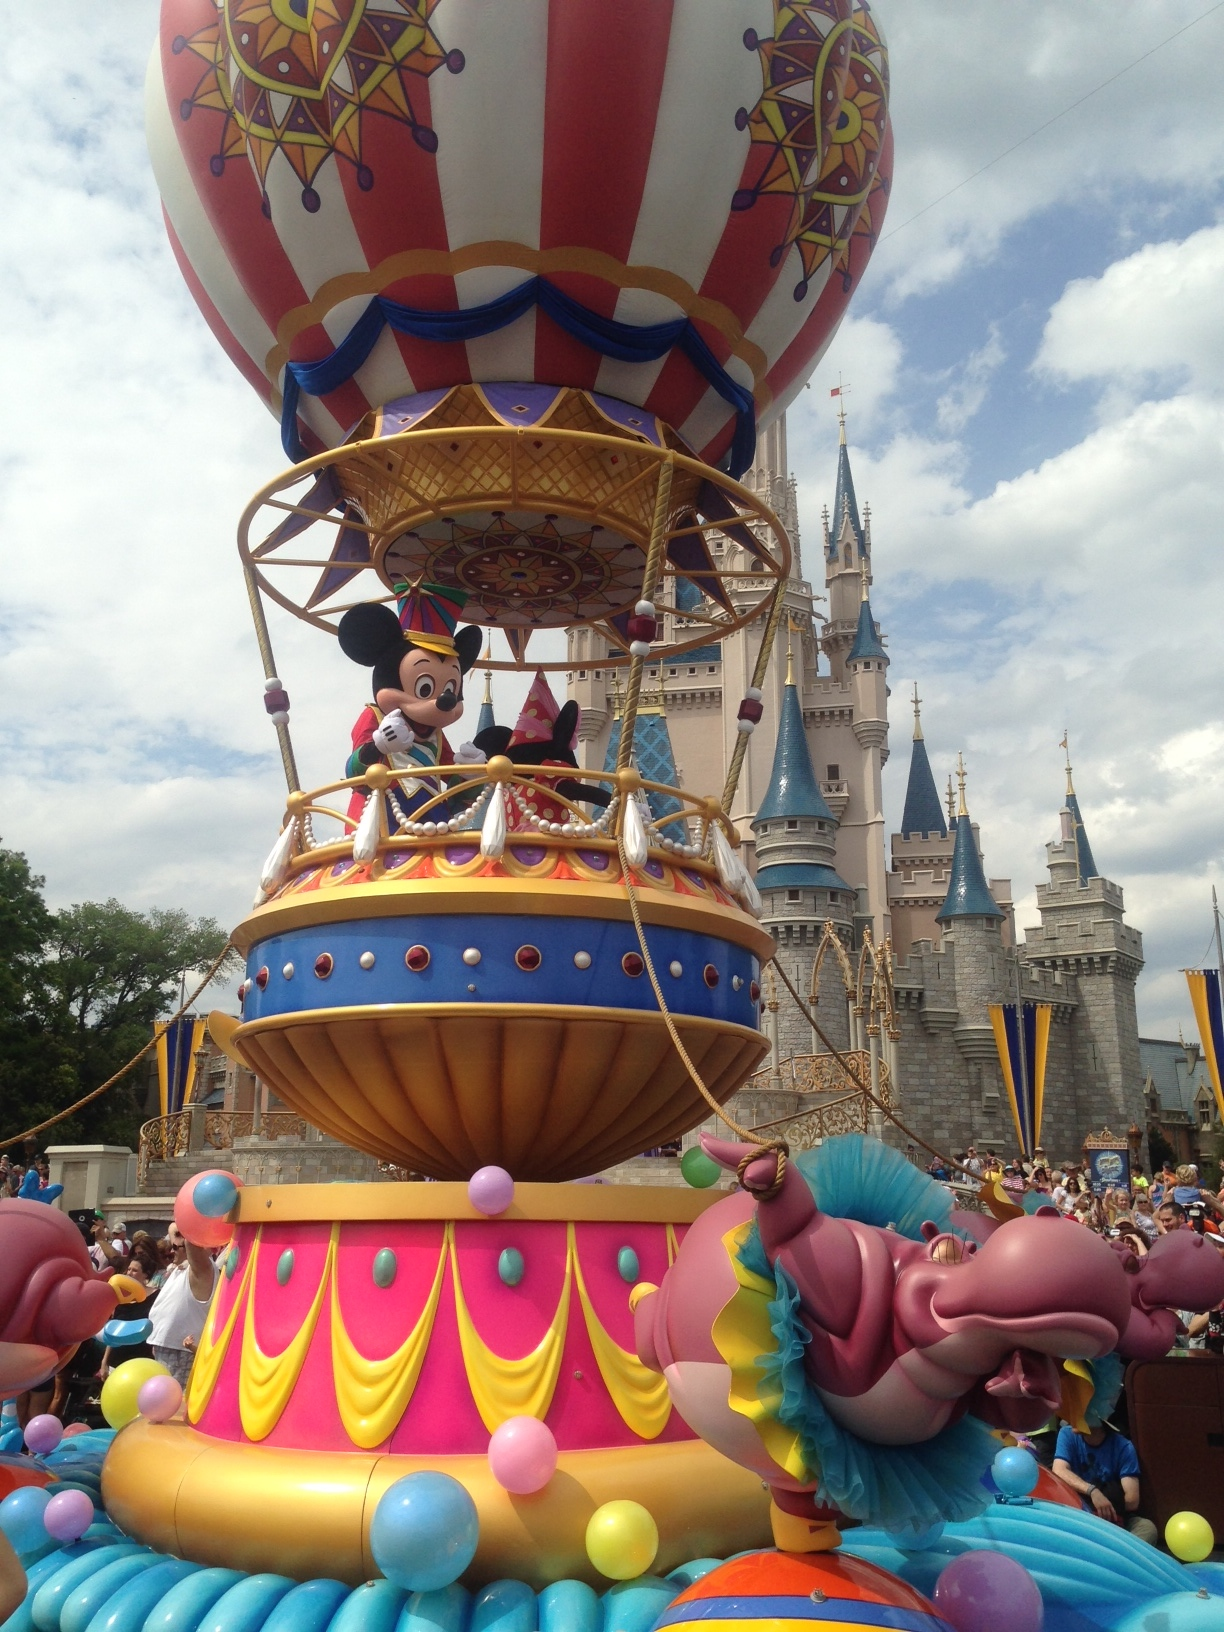 The NEW Festival of Fantasy Parade at the Magic Kingdom is FANTASTIC!